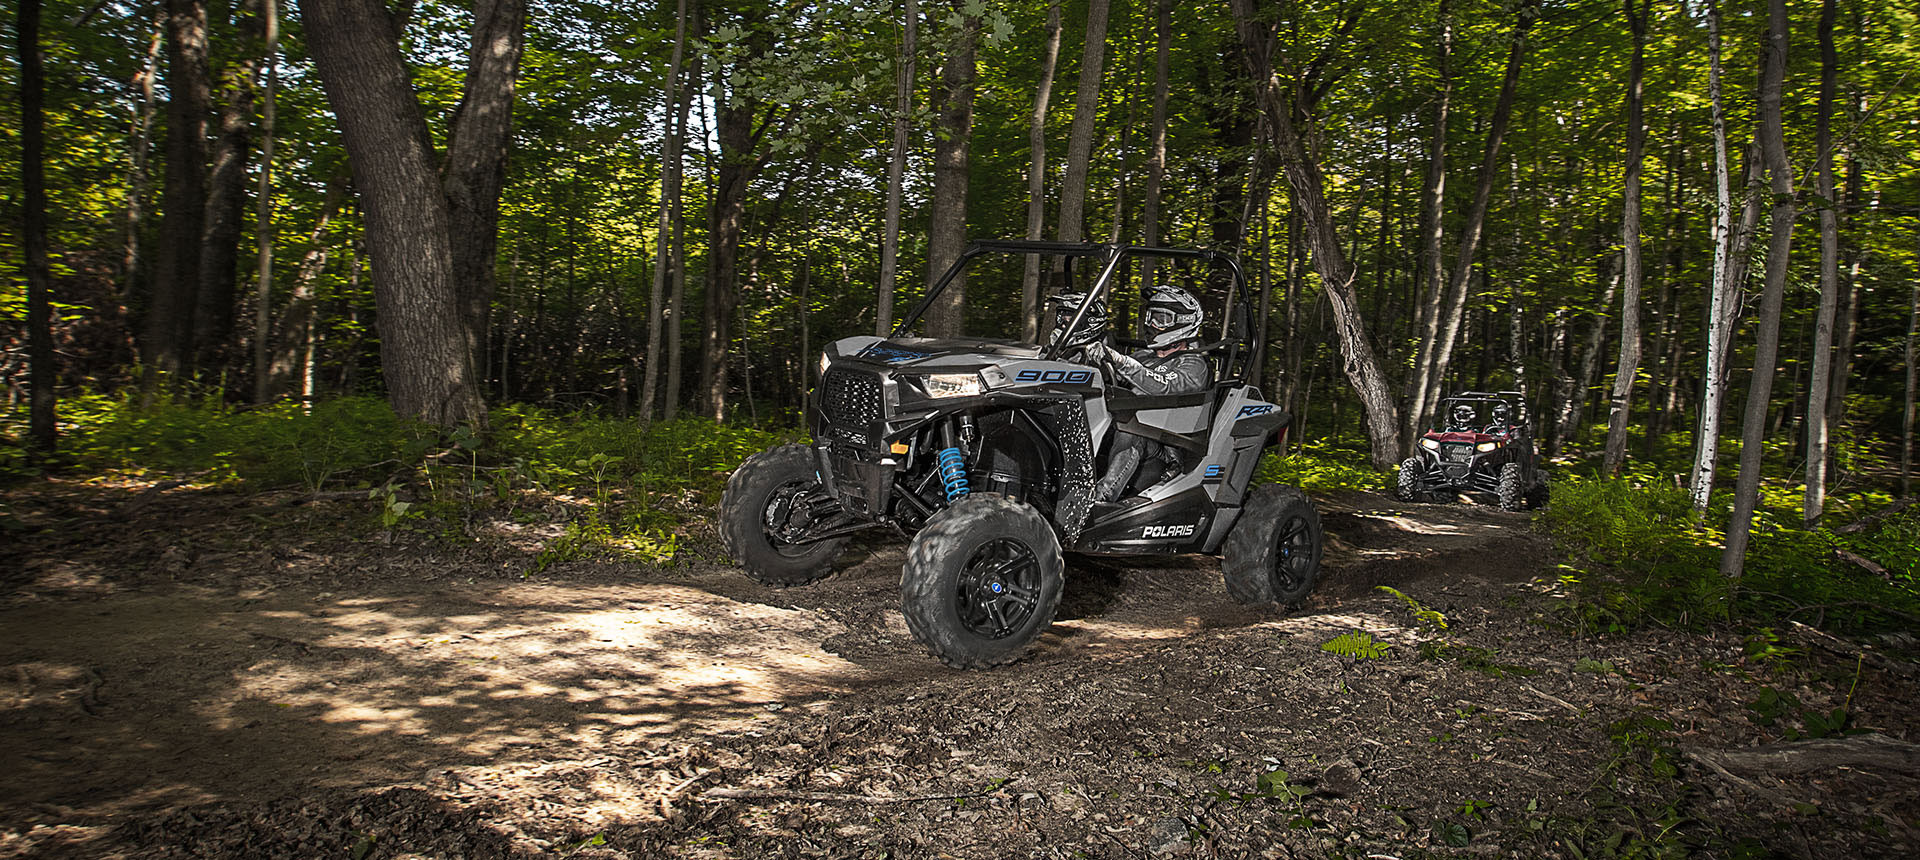 2020 RZR<sup>®</sup> Trail S 900 Instagram image 5